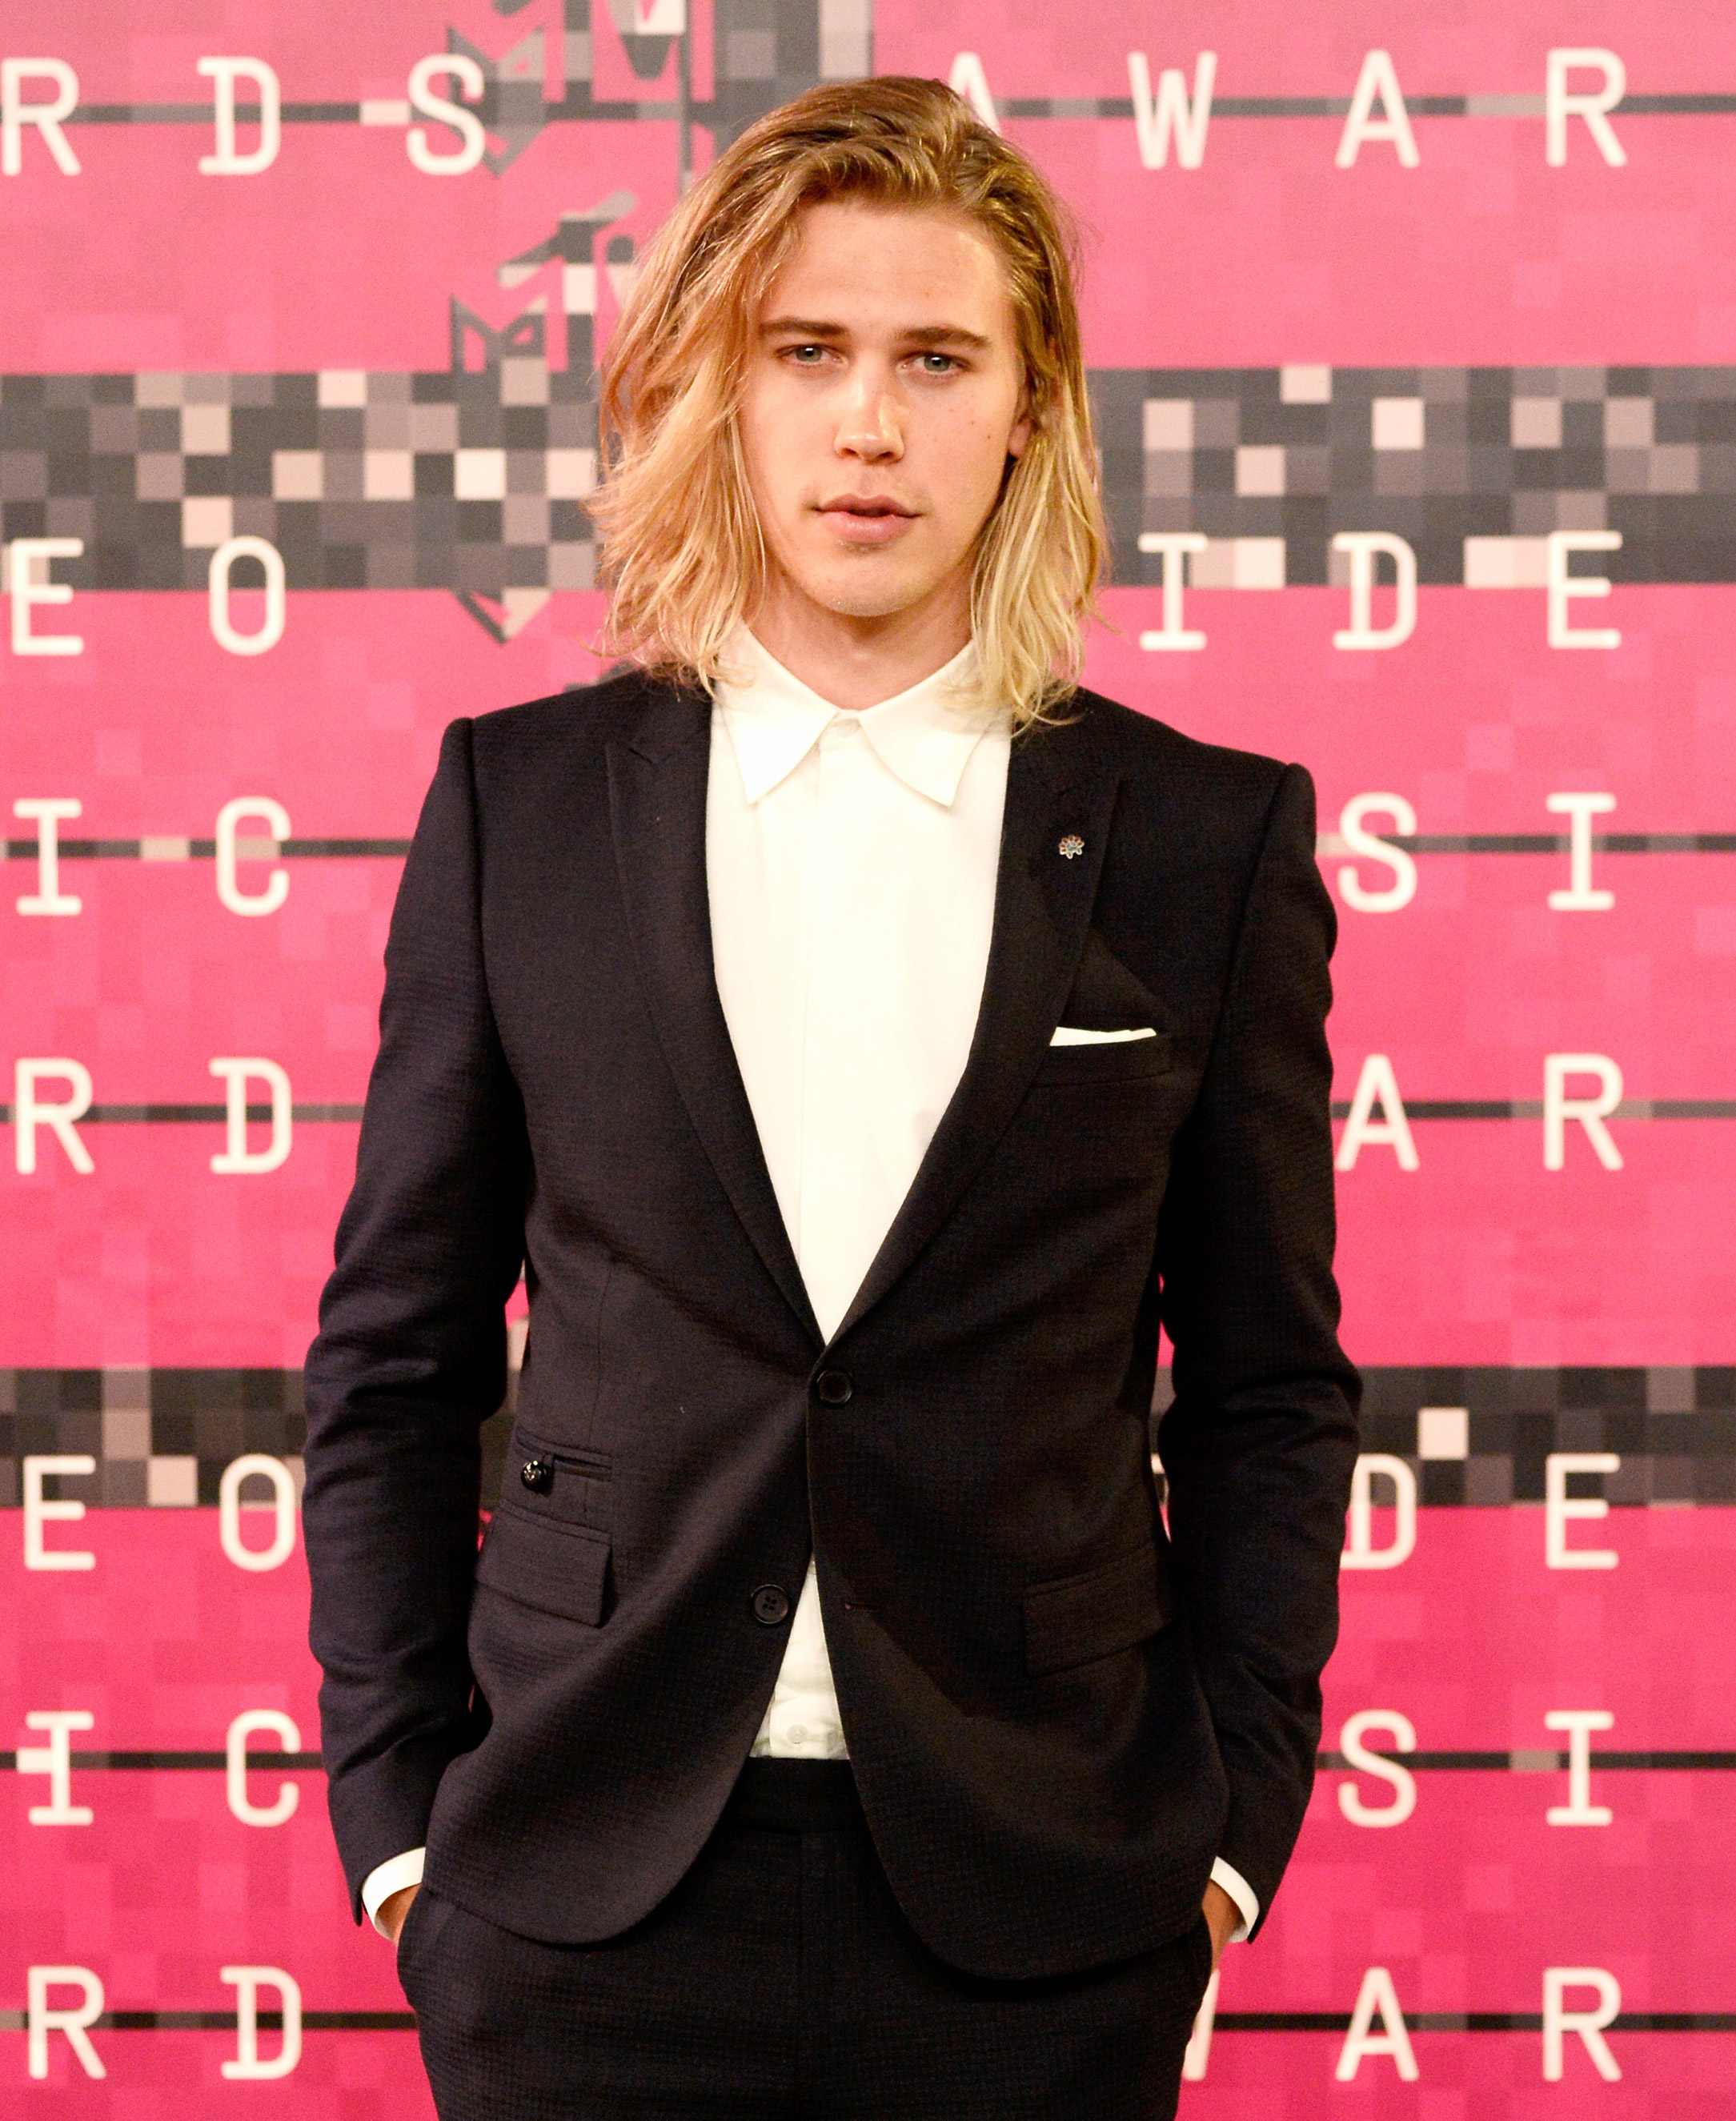 Austin Butler attends the 2015 MTV Video Music Awards at Microsoft Theater on Aug. 30, 2015, in Los Angeles.